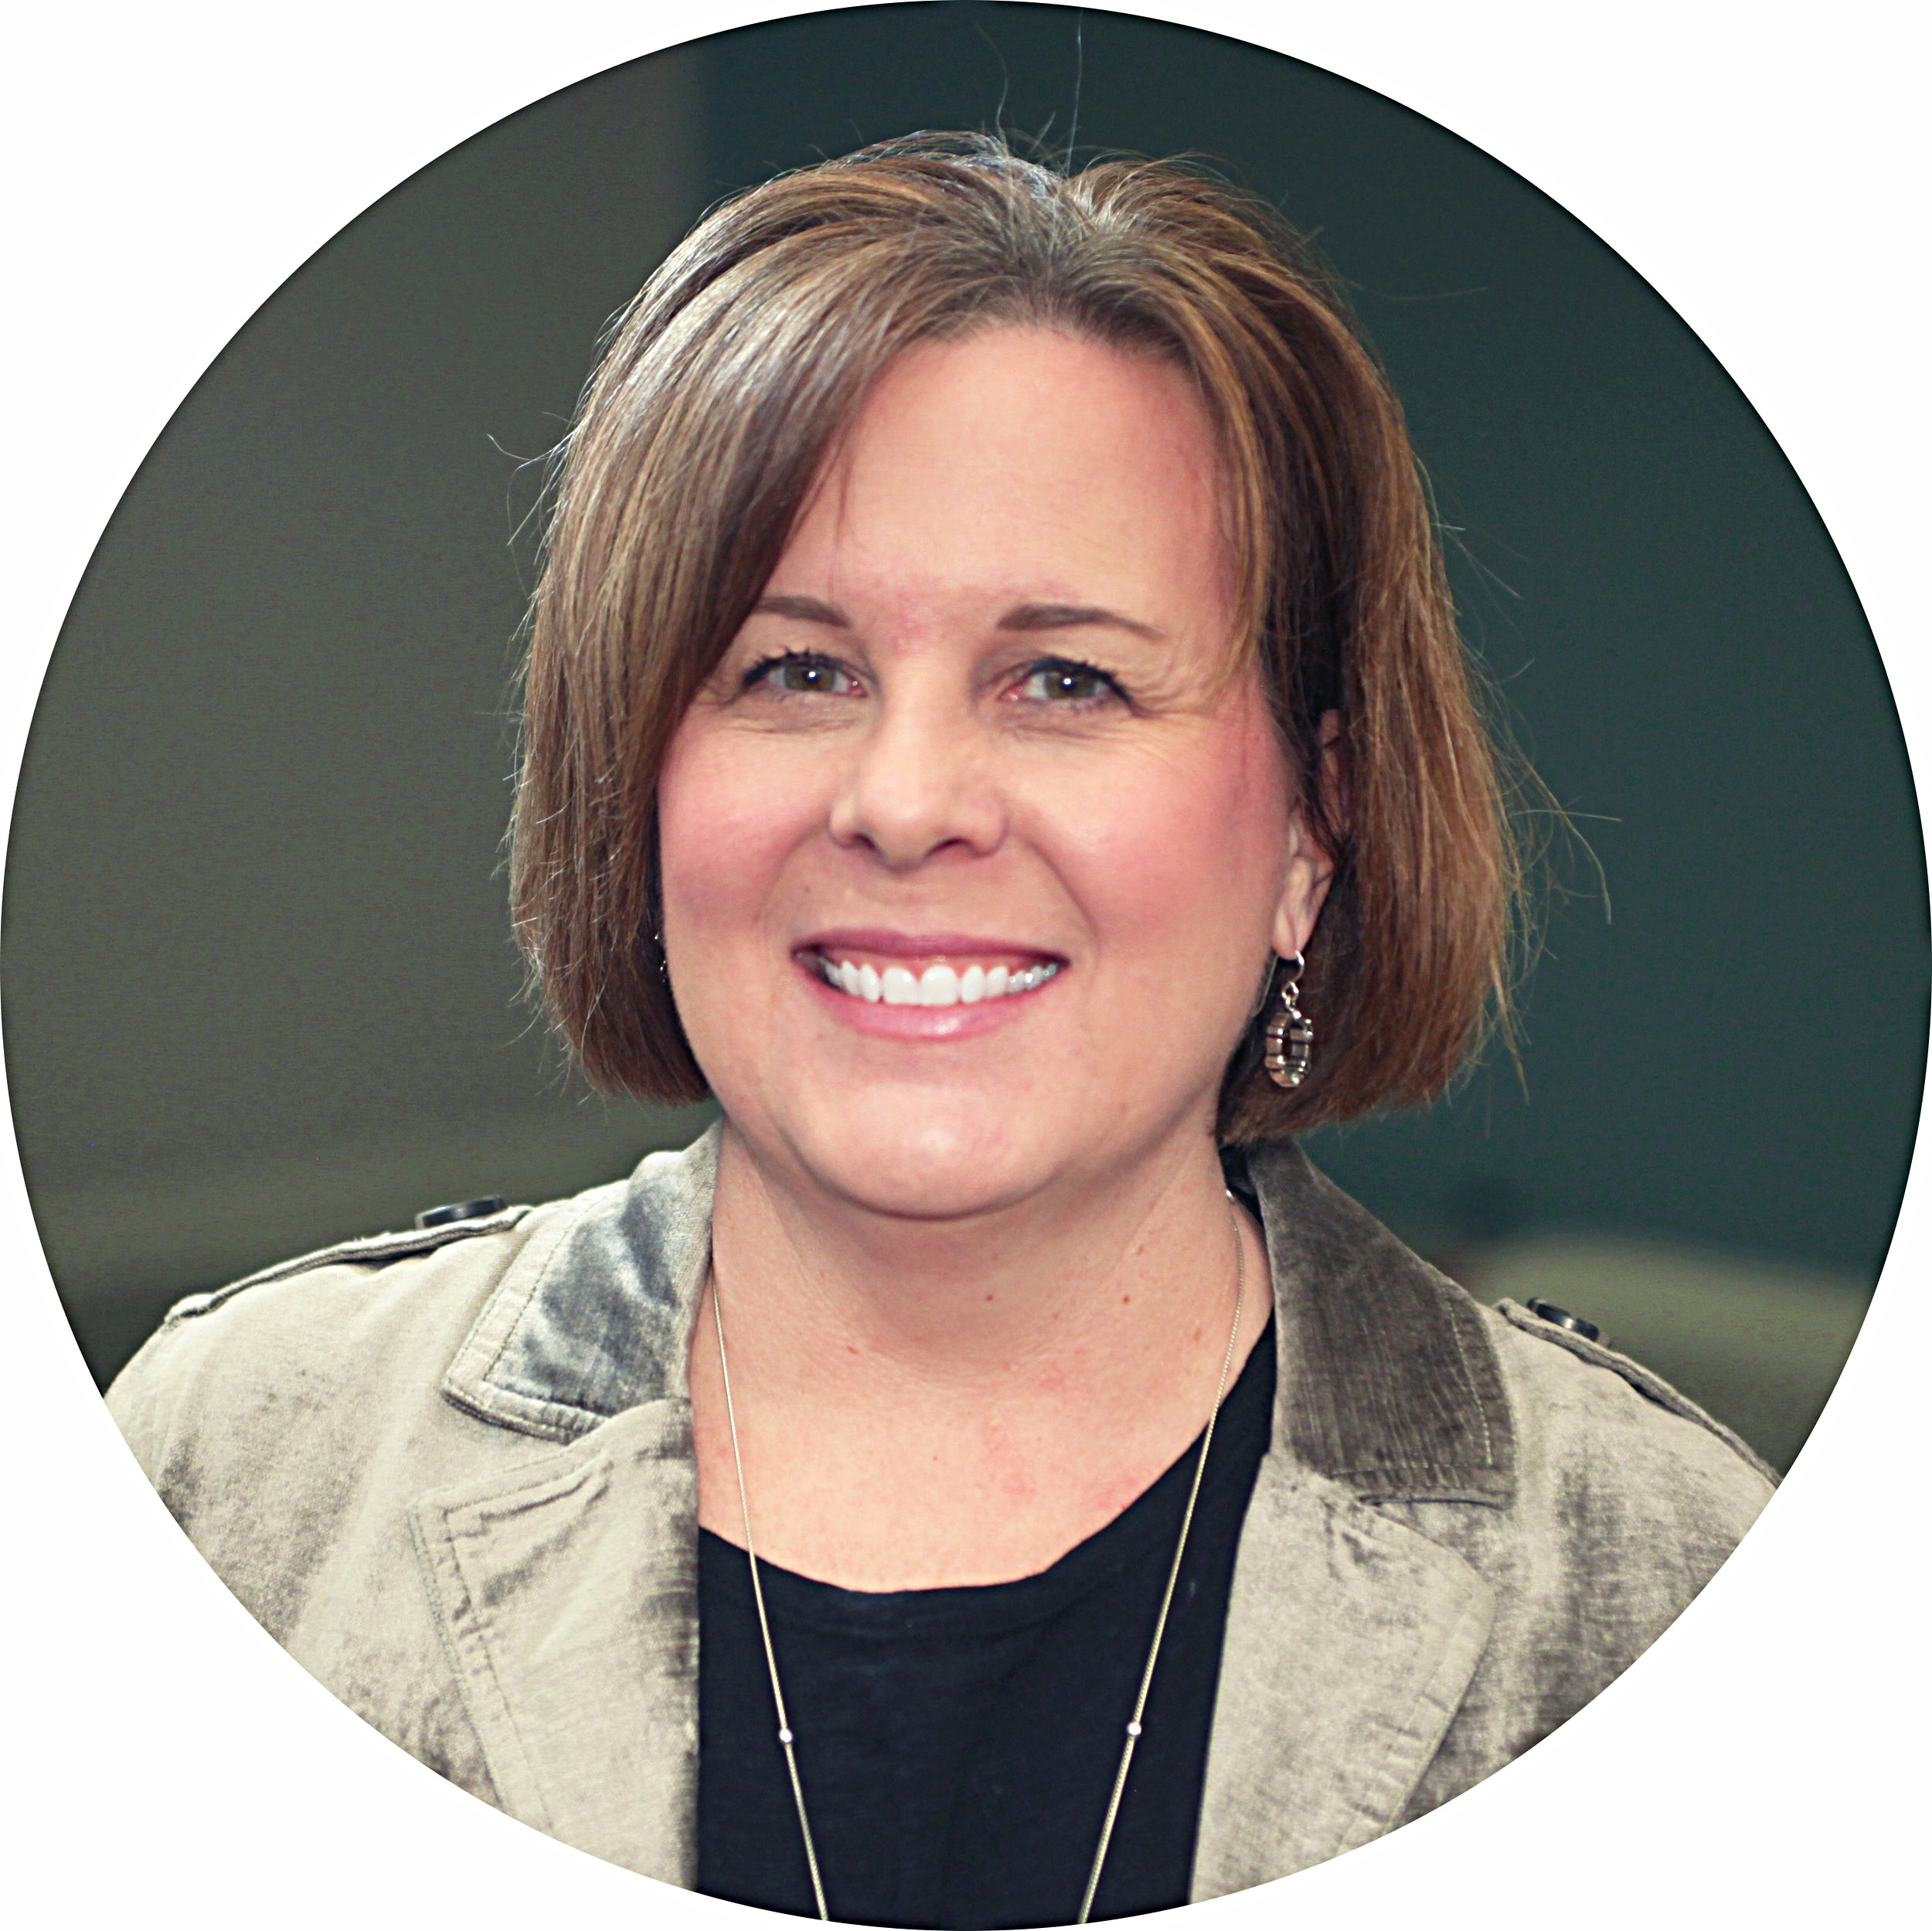 """Looking forward to meeting you! Stop by Connection Central to visit, get a cool welcome gift, and to get connected with BCC."" - Lori Sturtzer , Guest Services and Women's Ministry Coordinator"